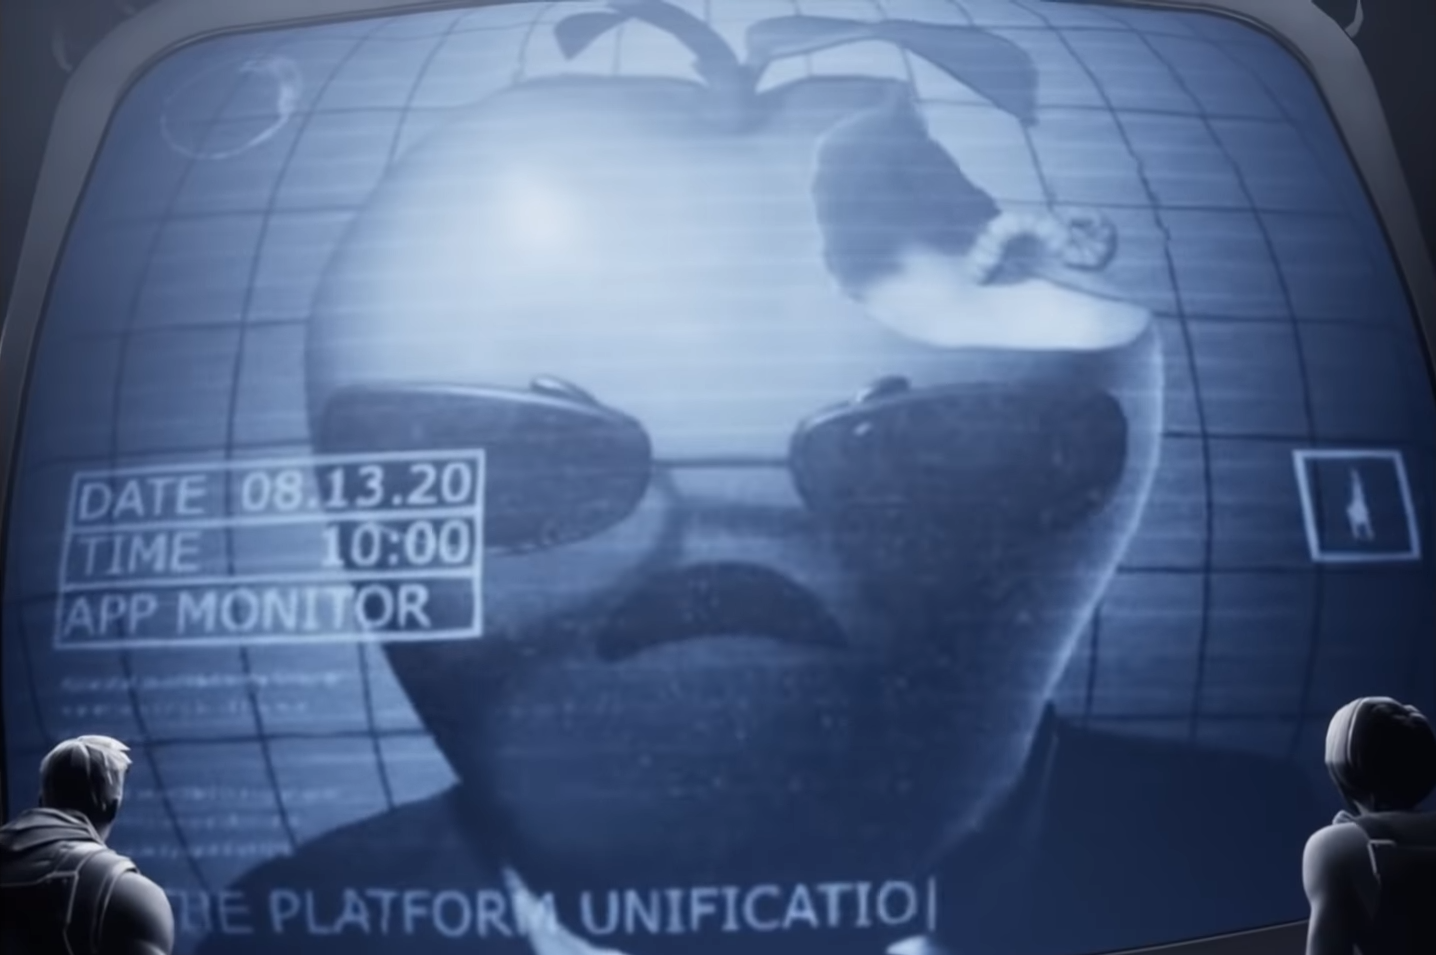 A Fortnite skins of an apple-headed character with sunglasses and a suit